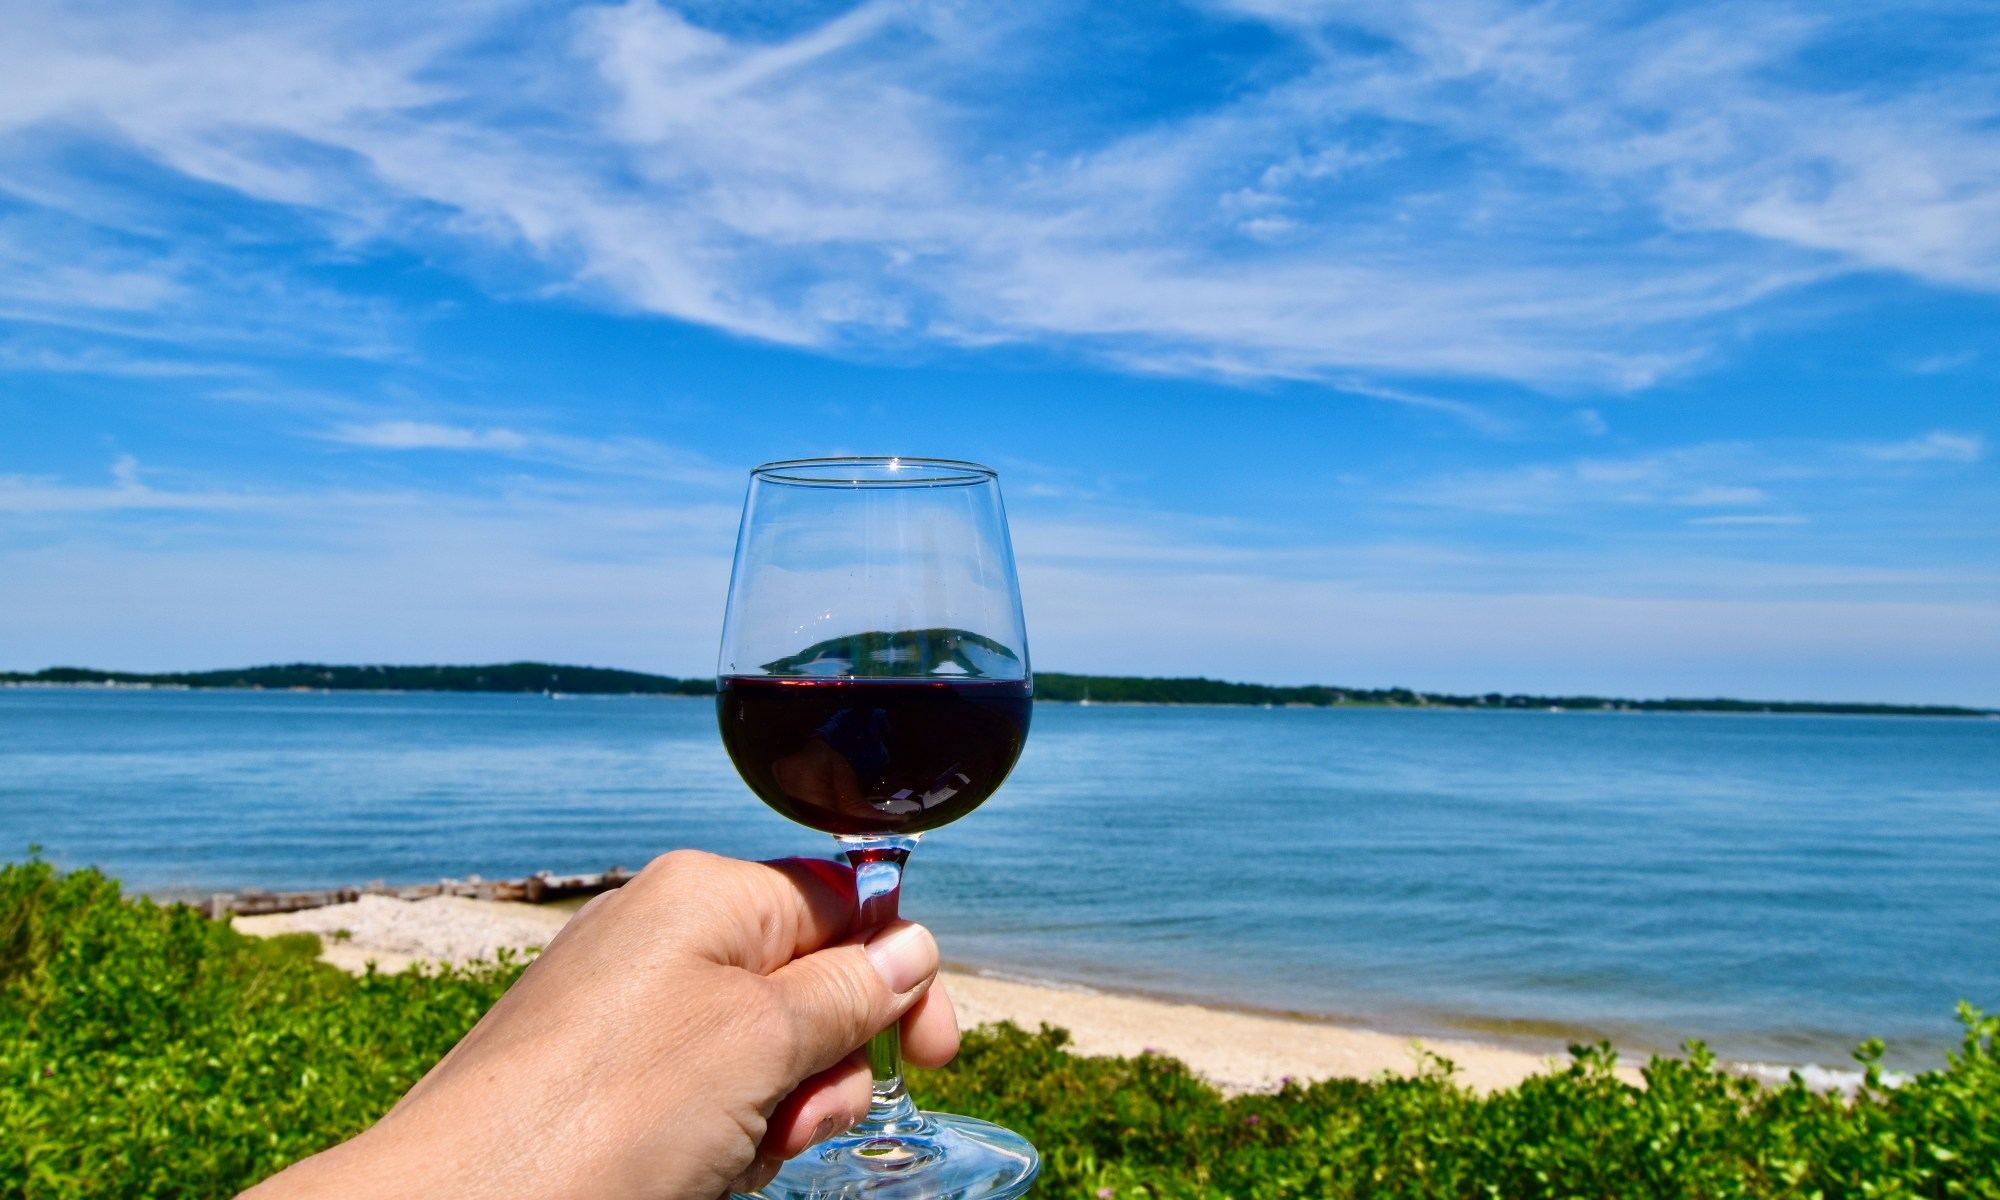 glass of red wine with water in background.